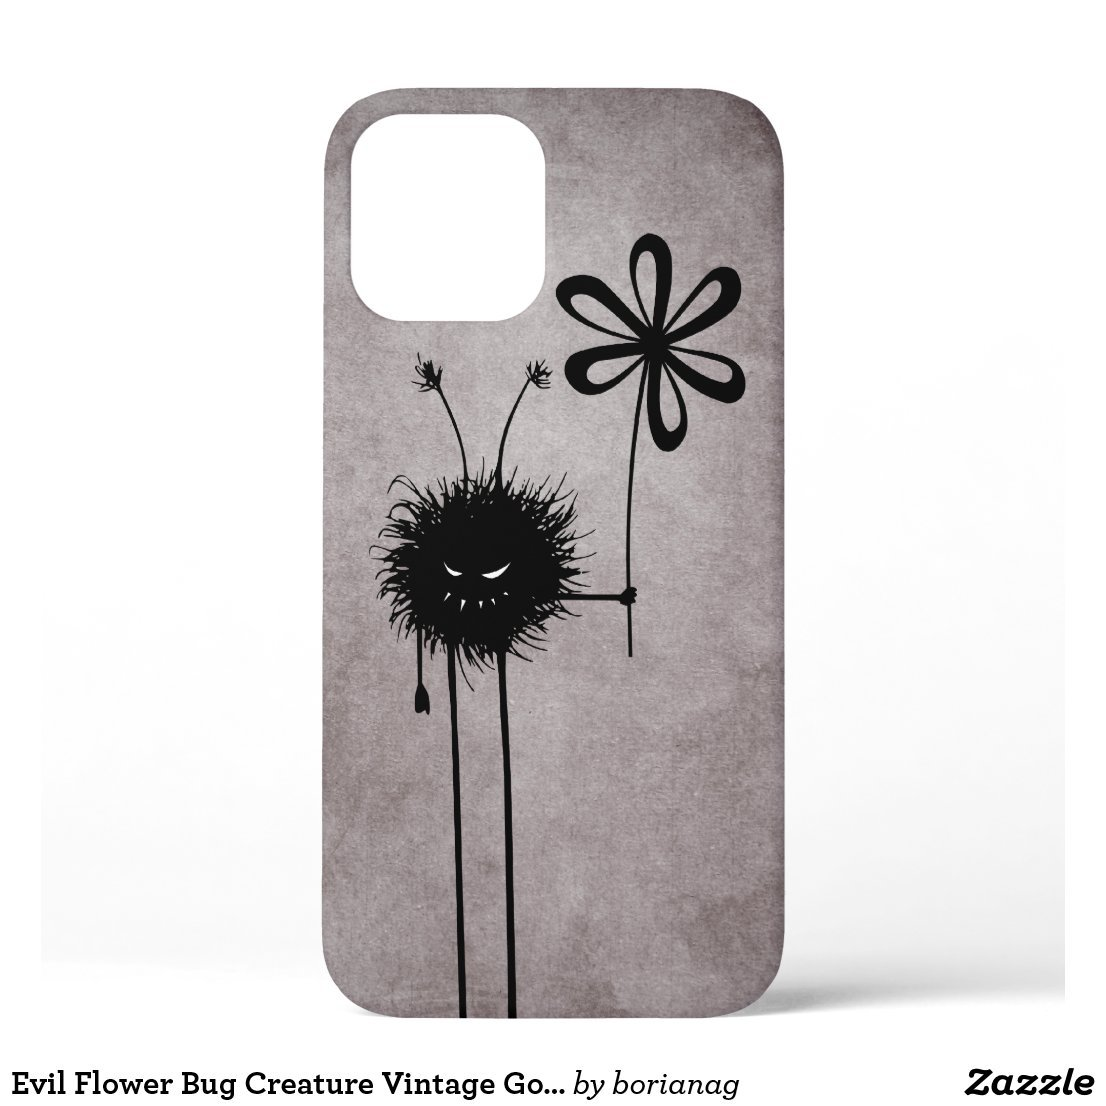 Evil Flower Bug Creature Vintage Gothic iPhone 12 Case    #zazzle #iphonecase #iphone #cases #iphonecases #evil #gothic #goth #character #texture #dark #flower #cool #funny #characters